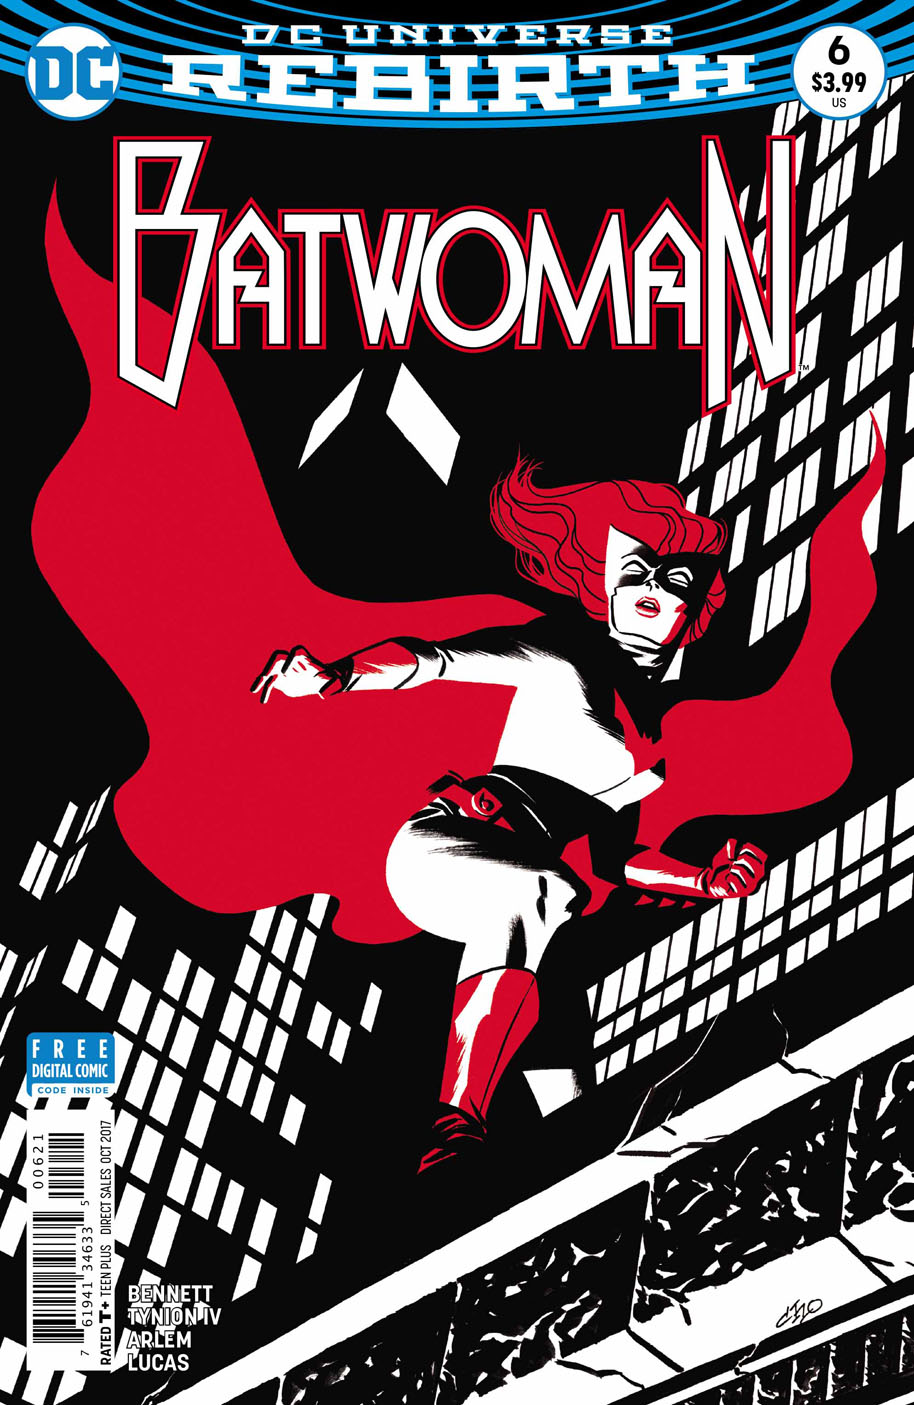 Batwoman 6 open order variant cover